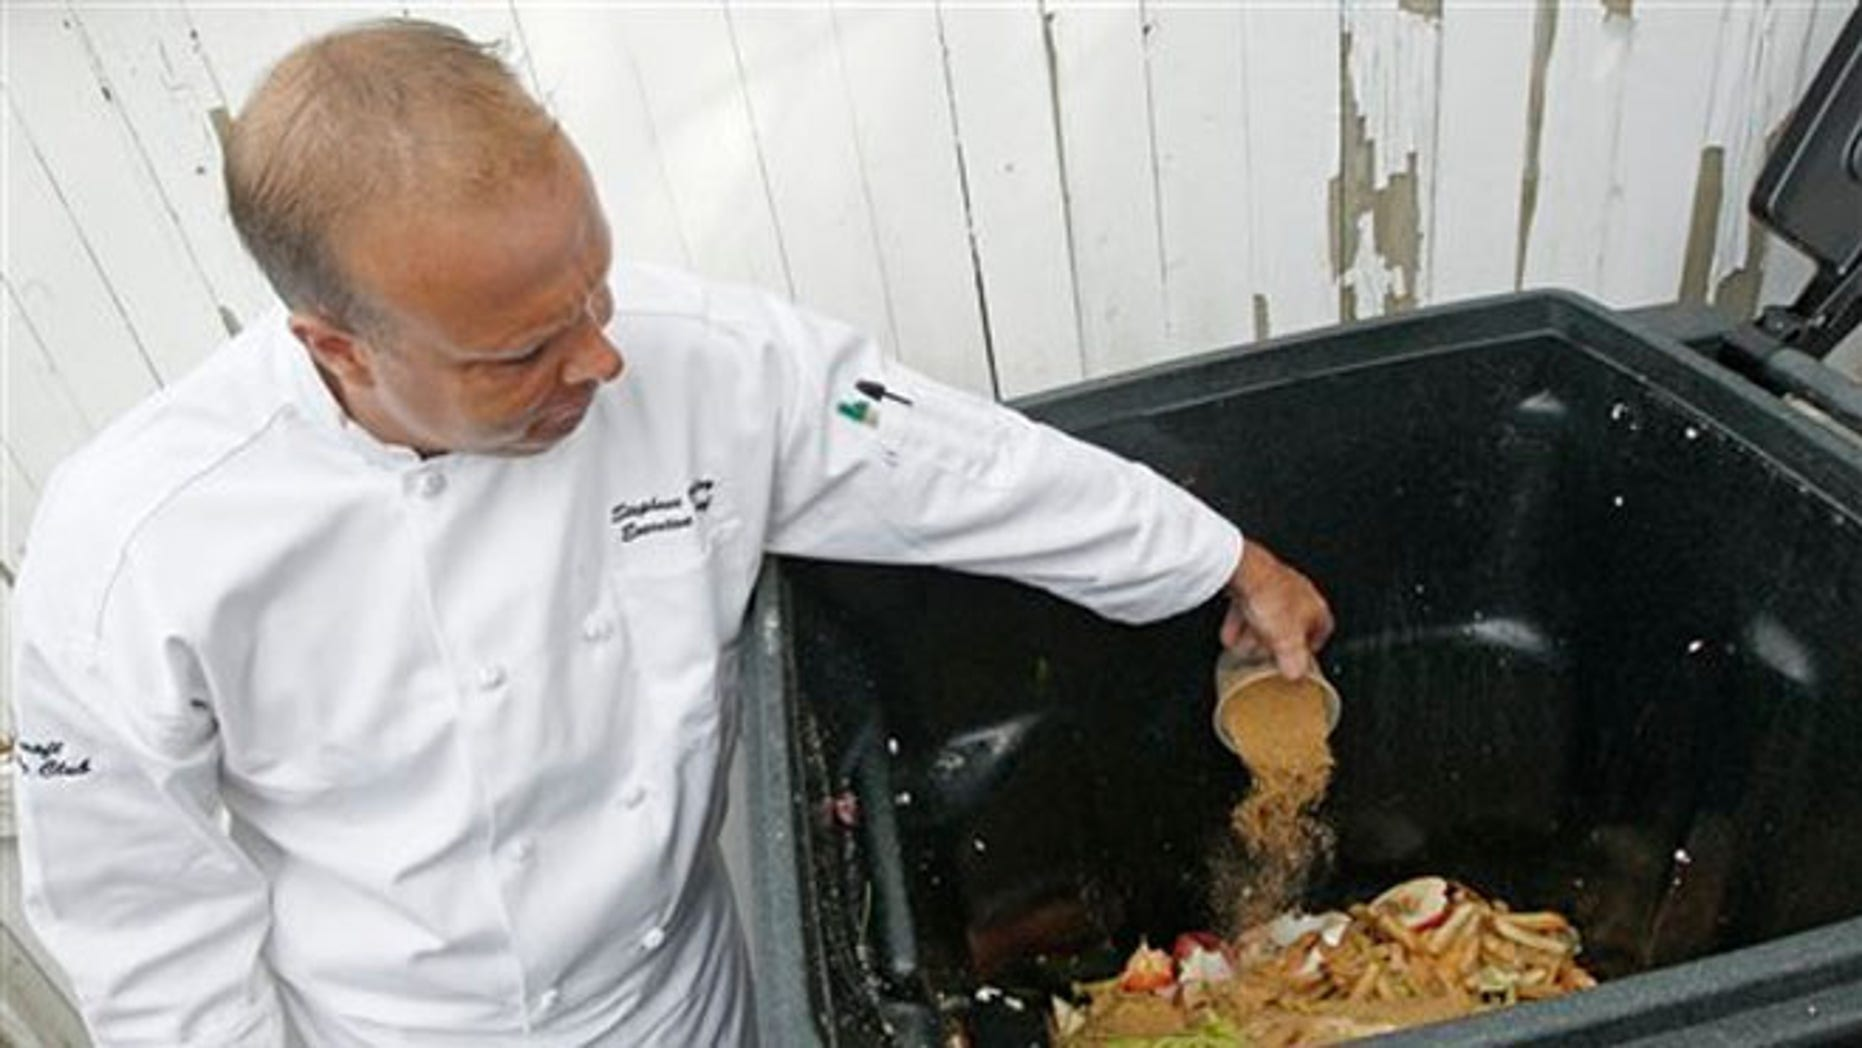 June 11, 2012: Executive chef Stephane Baloy scatters a mixture of microorganisms onto a container of composting scrap food at the Ferncroft Country Club in Middleton, Mass.